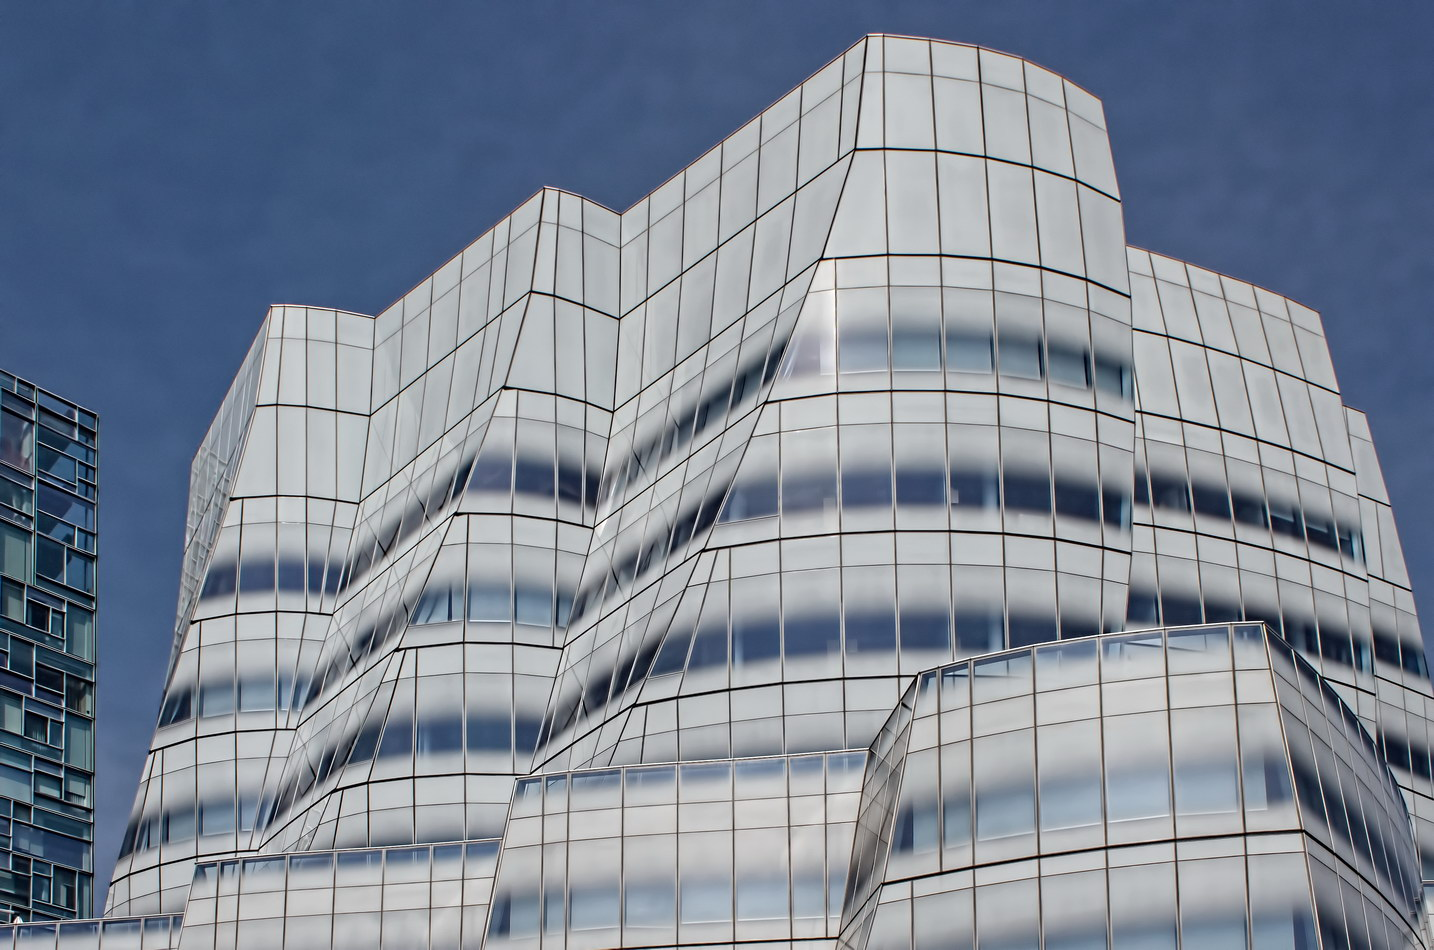 New york architecture photos iac building - Architecture of a building ...